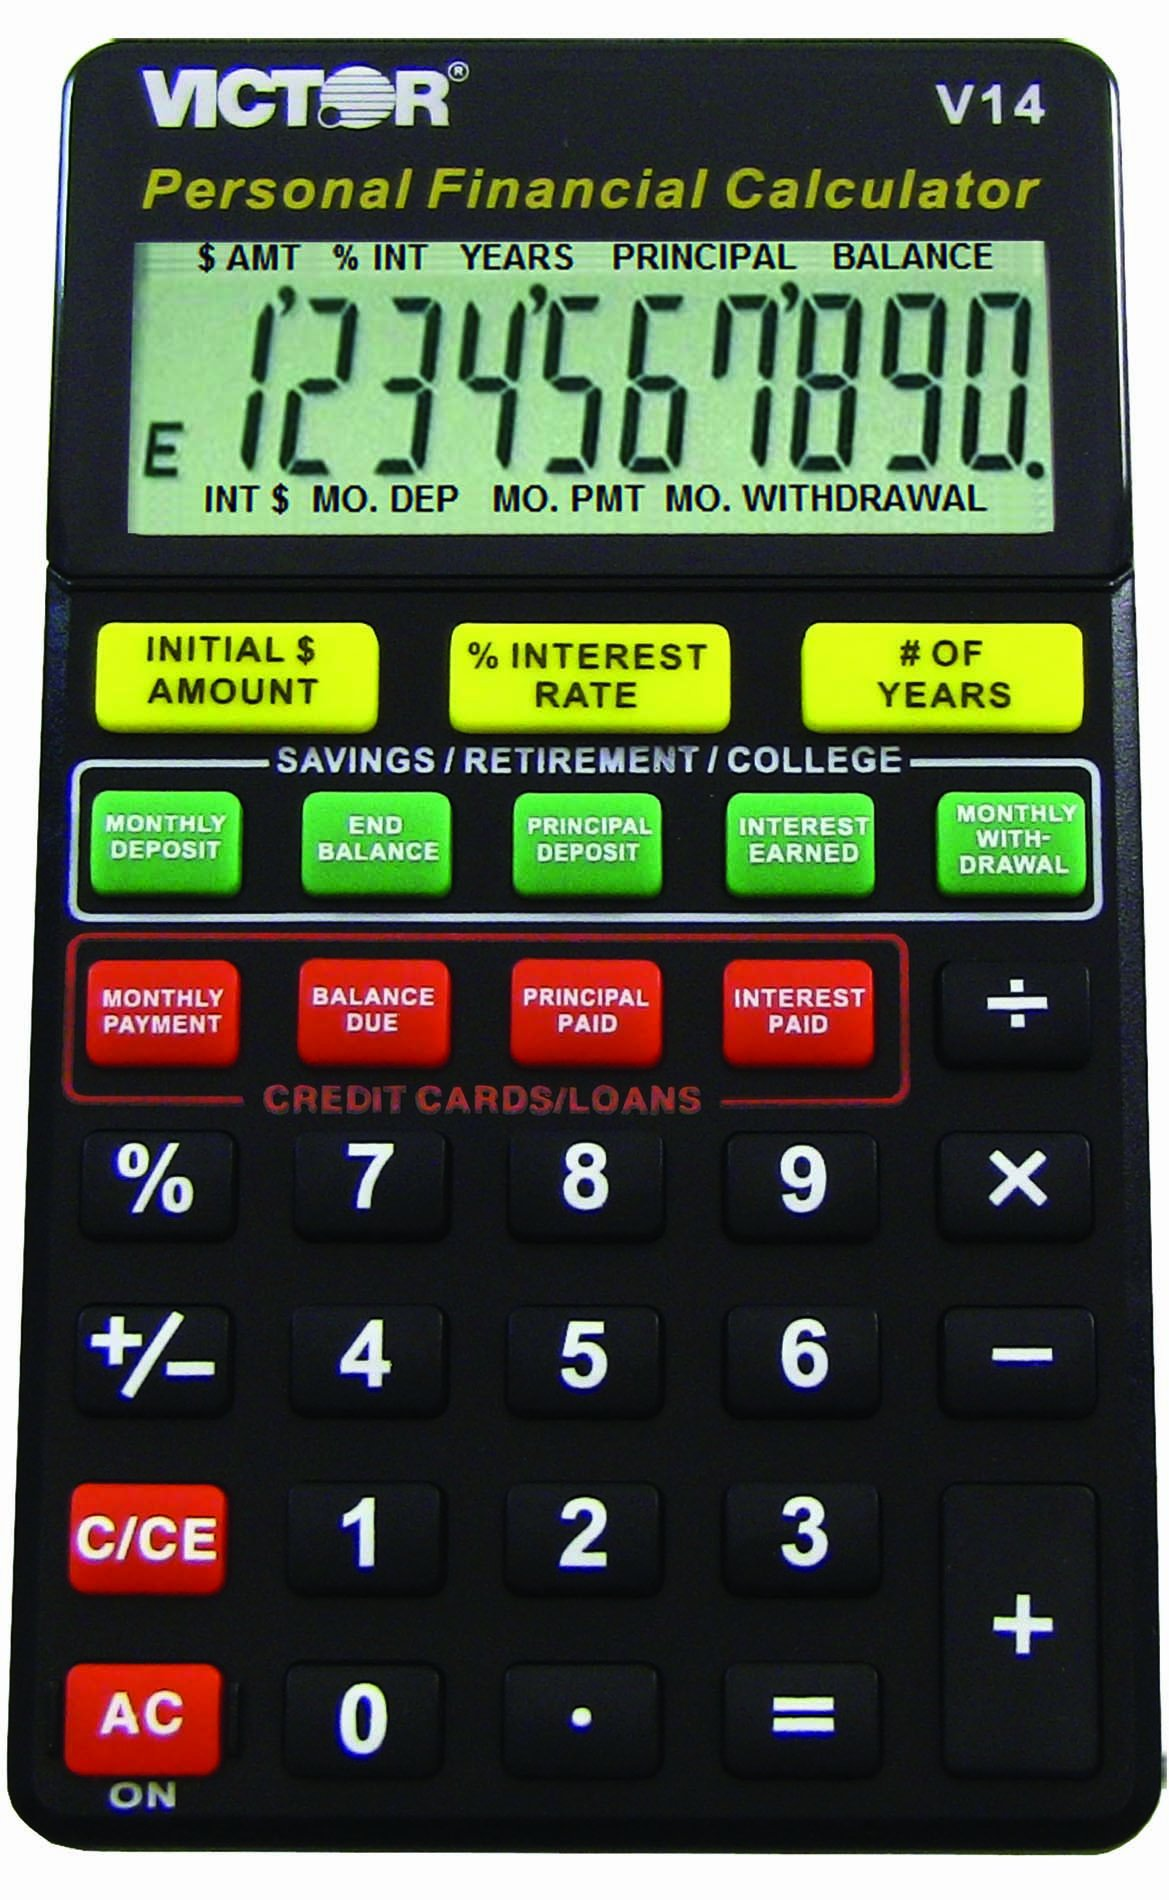 VCTV14 - Victor V14 Personal Financial Calculator for Dummies by Victor